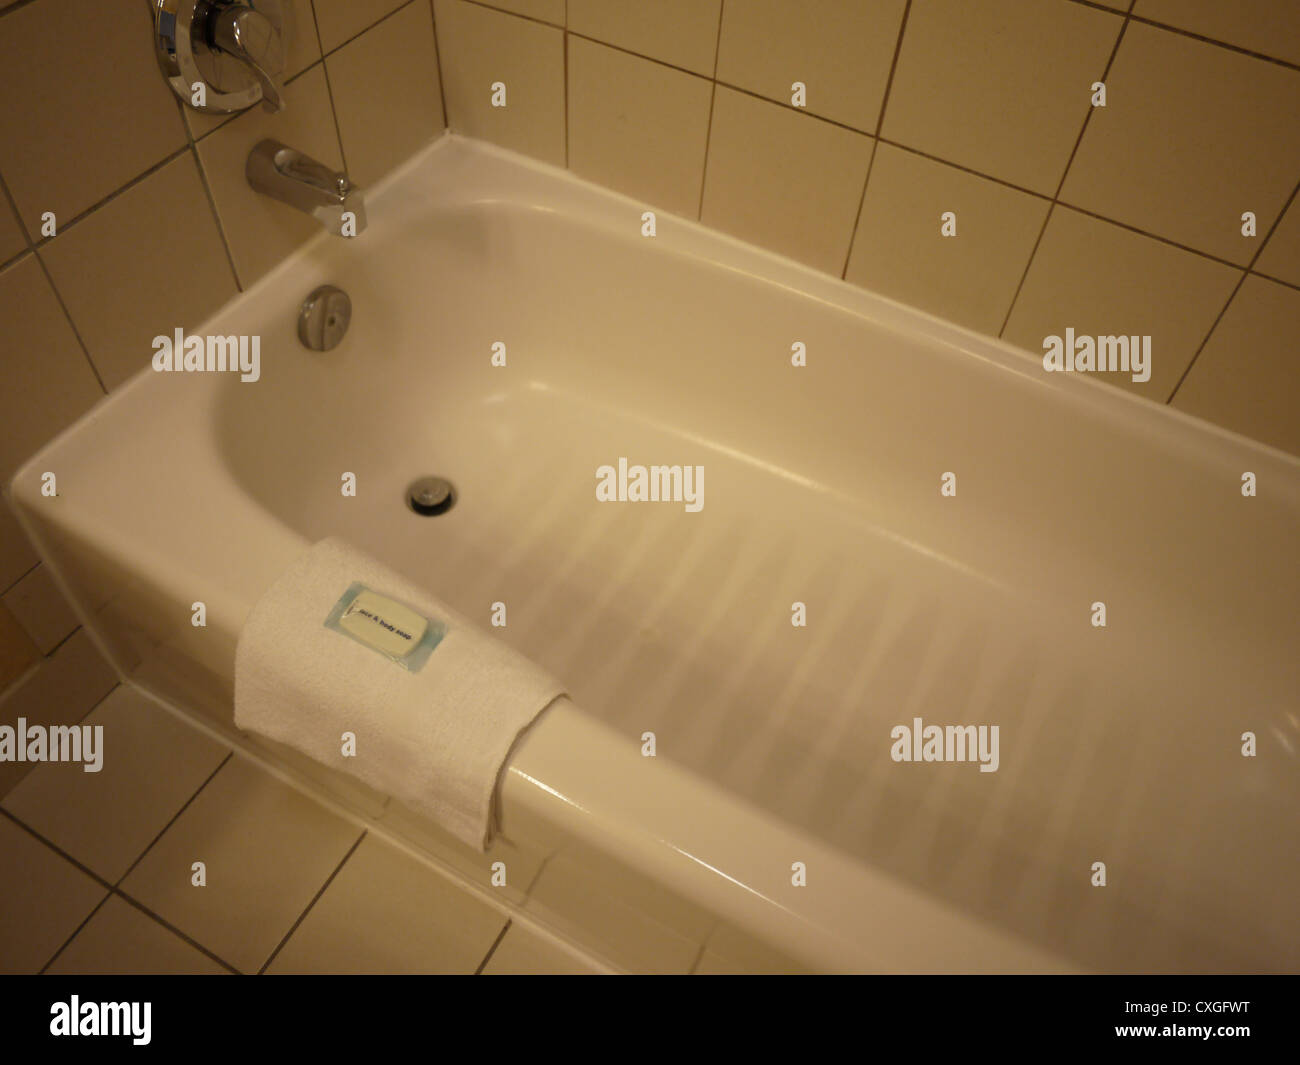 old vintage cheap inexpensive bathtub Stock Photo, Royalty Free ...